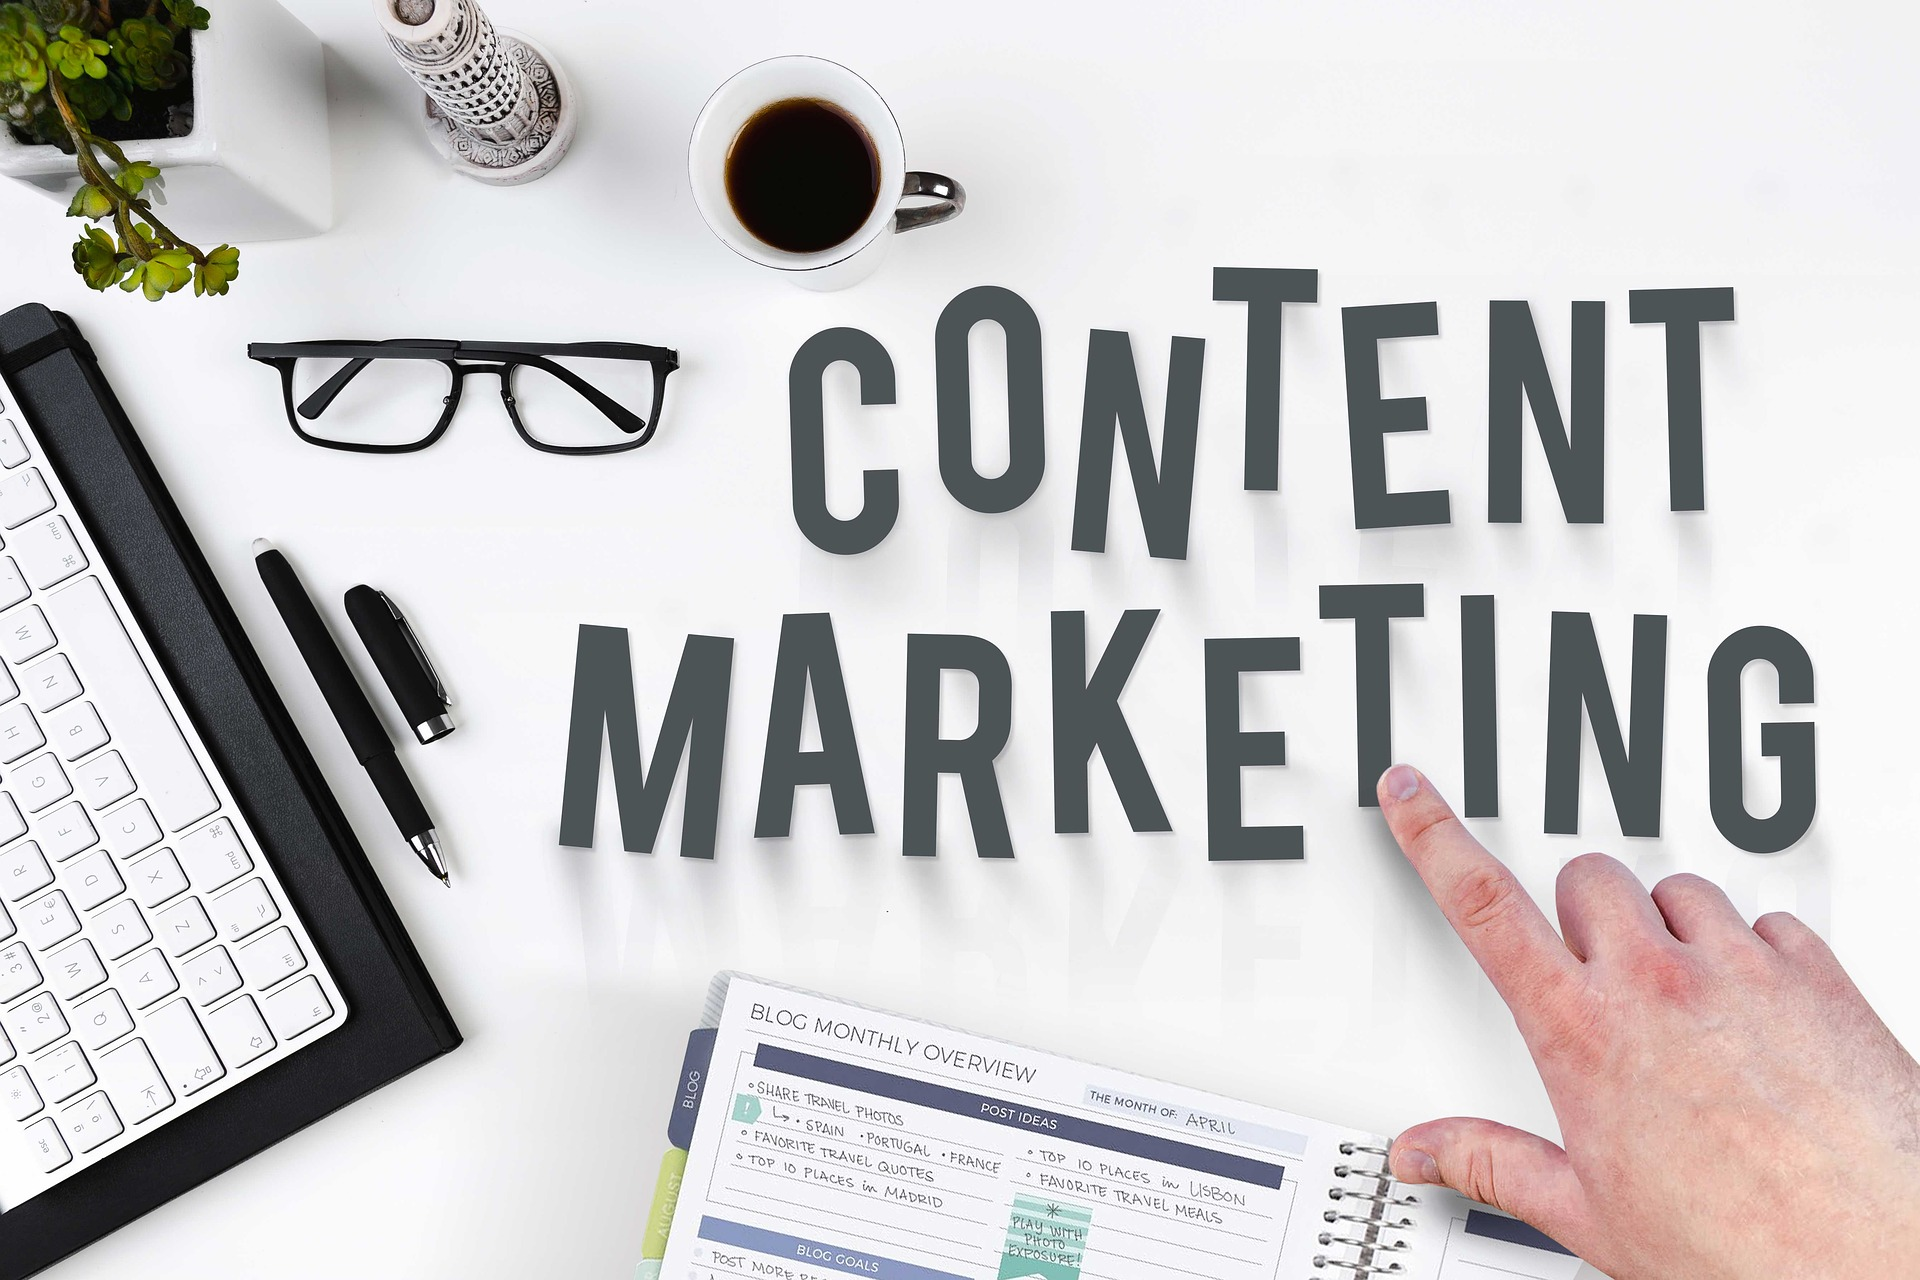 Different Types of Content for Content Marketing